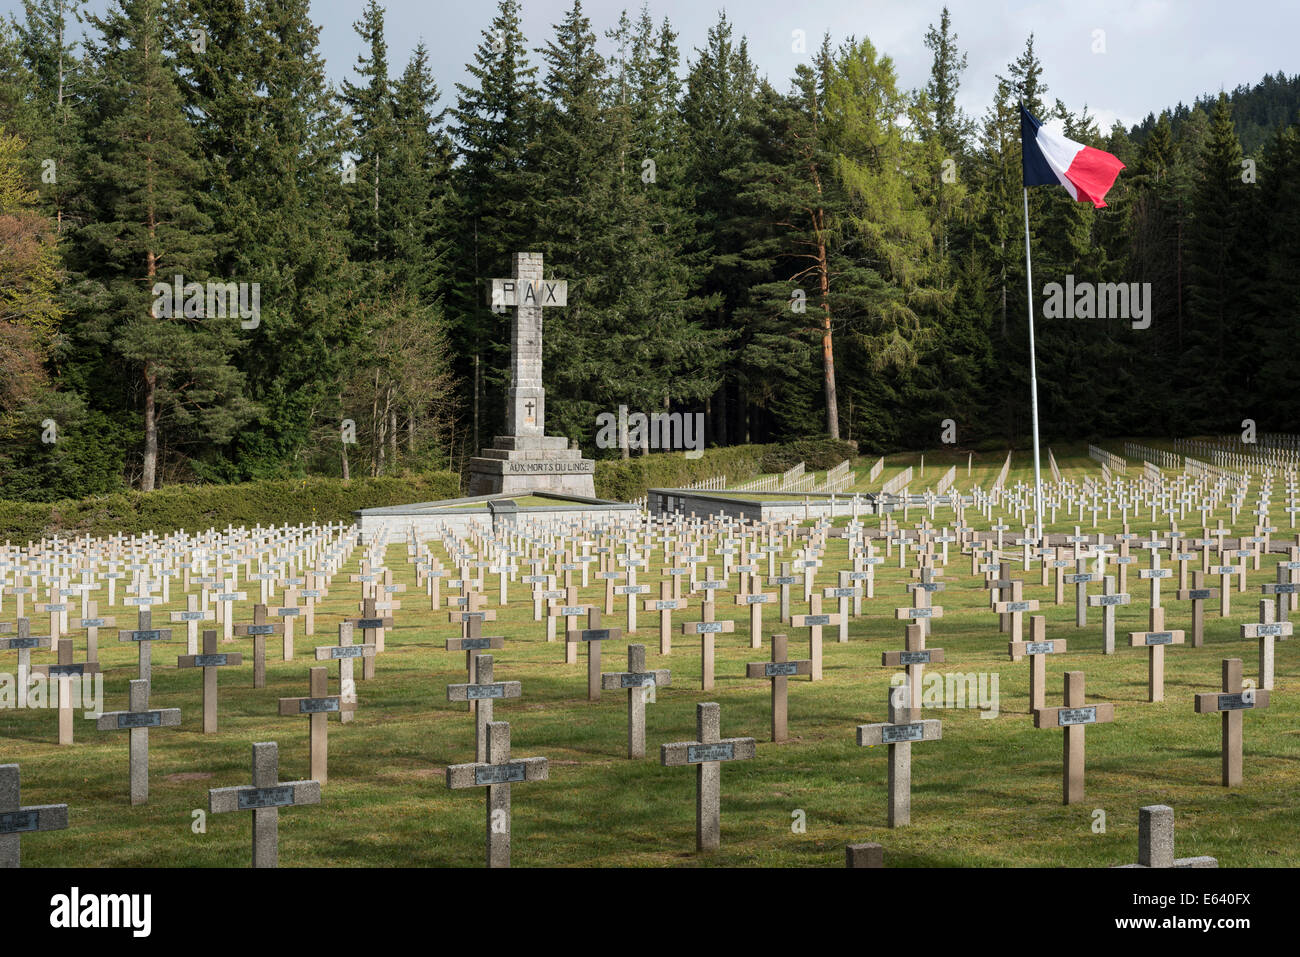 Stone crosses, French military cemetery, First World War, Col du Wettstein, Vosges, Orbey, Alsace, France - Stock Image